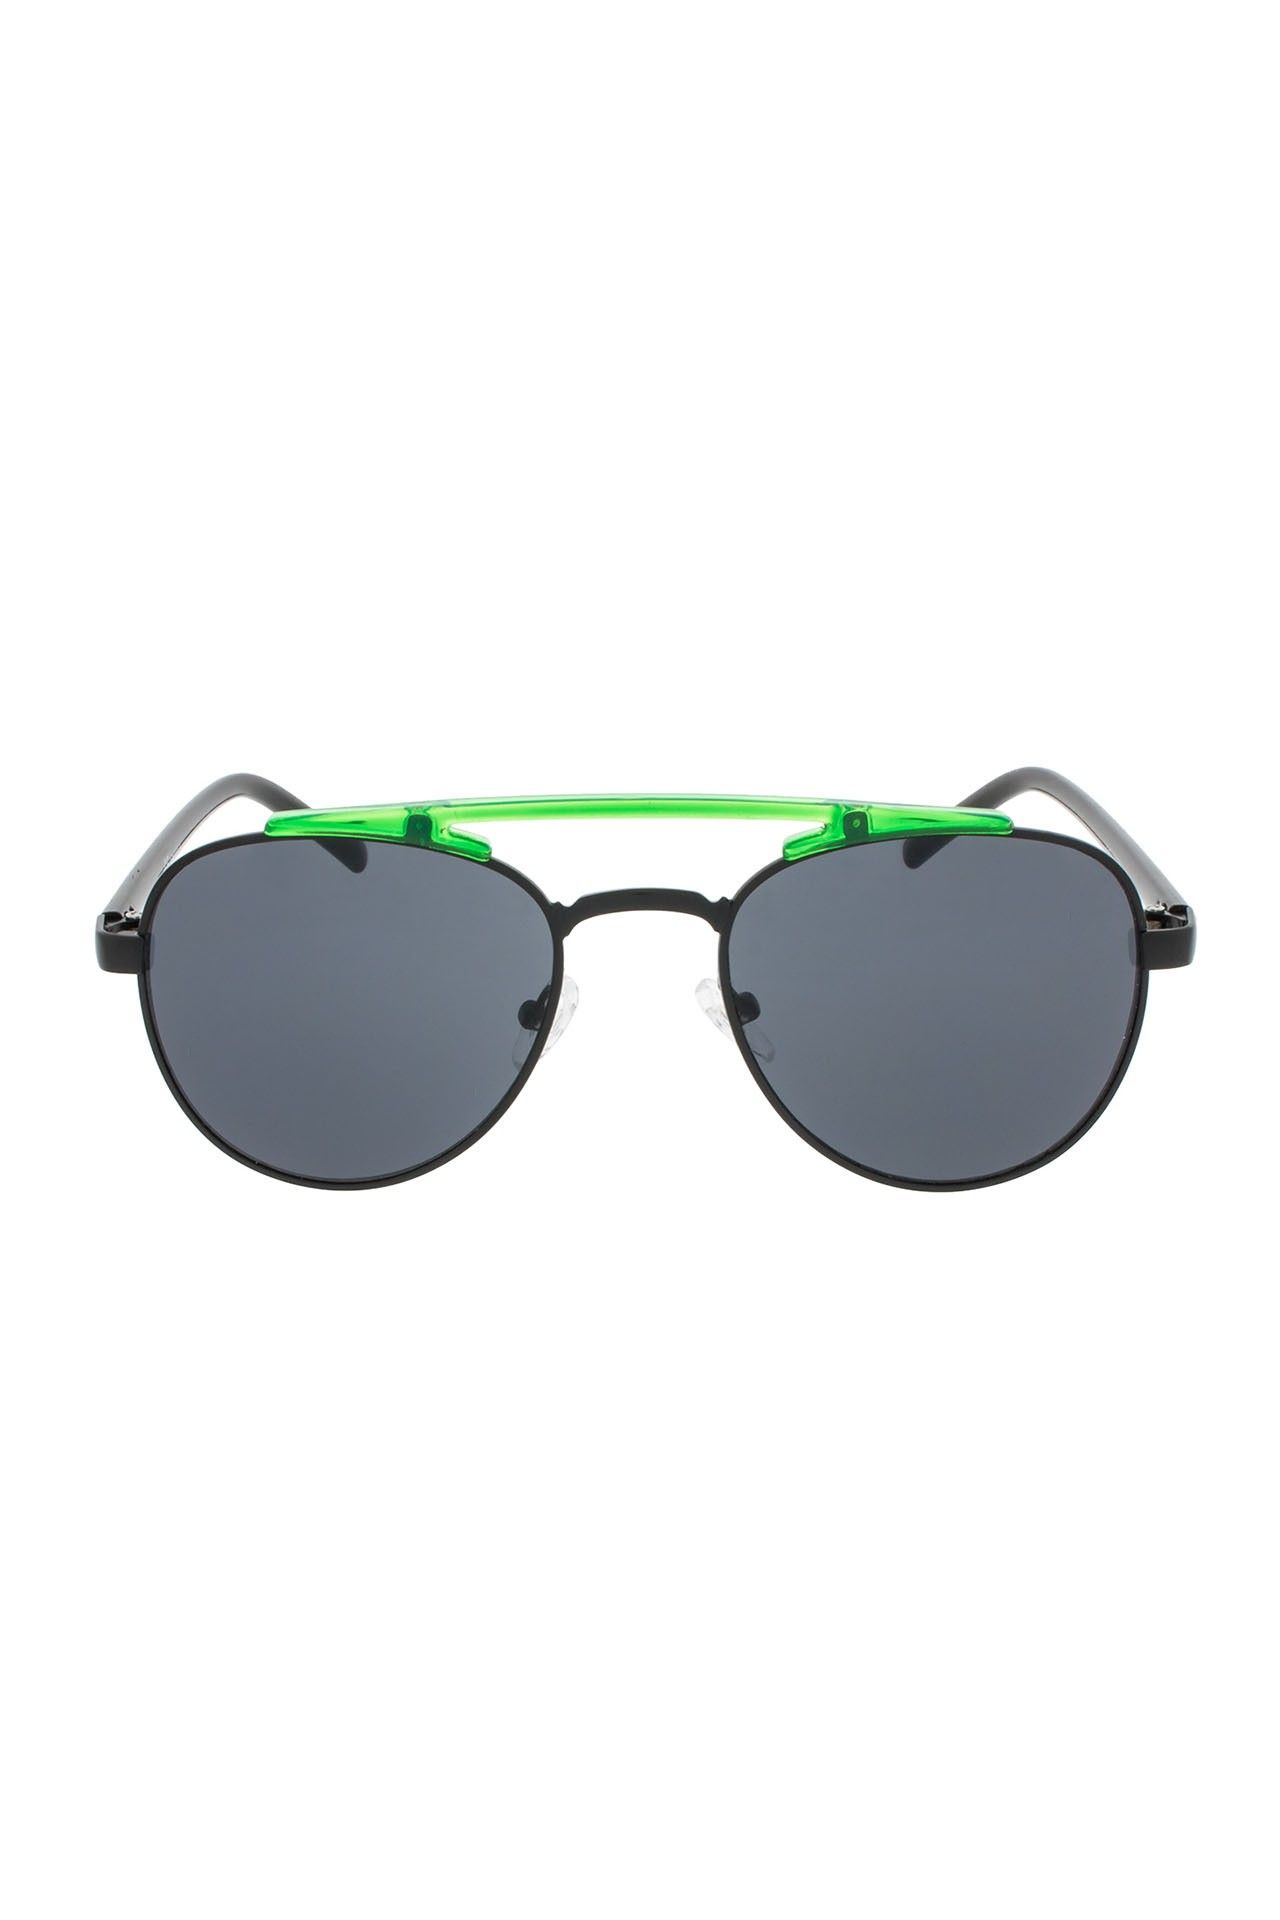 Afbeelding van Icon Eyewear 17M7030 Clear Neon Lime Green With Black Temples / Smoke